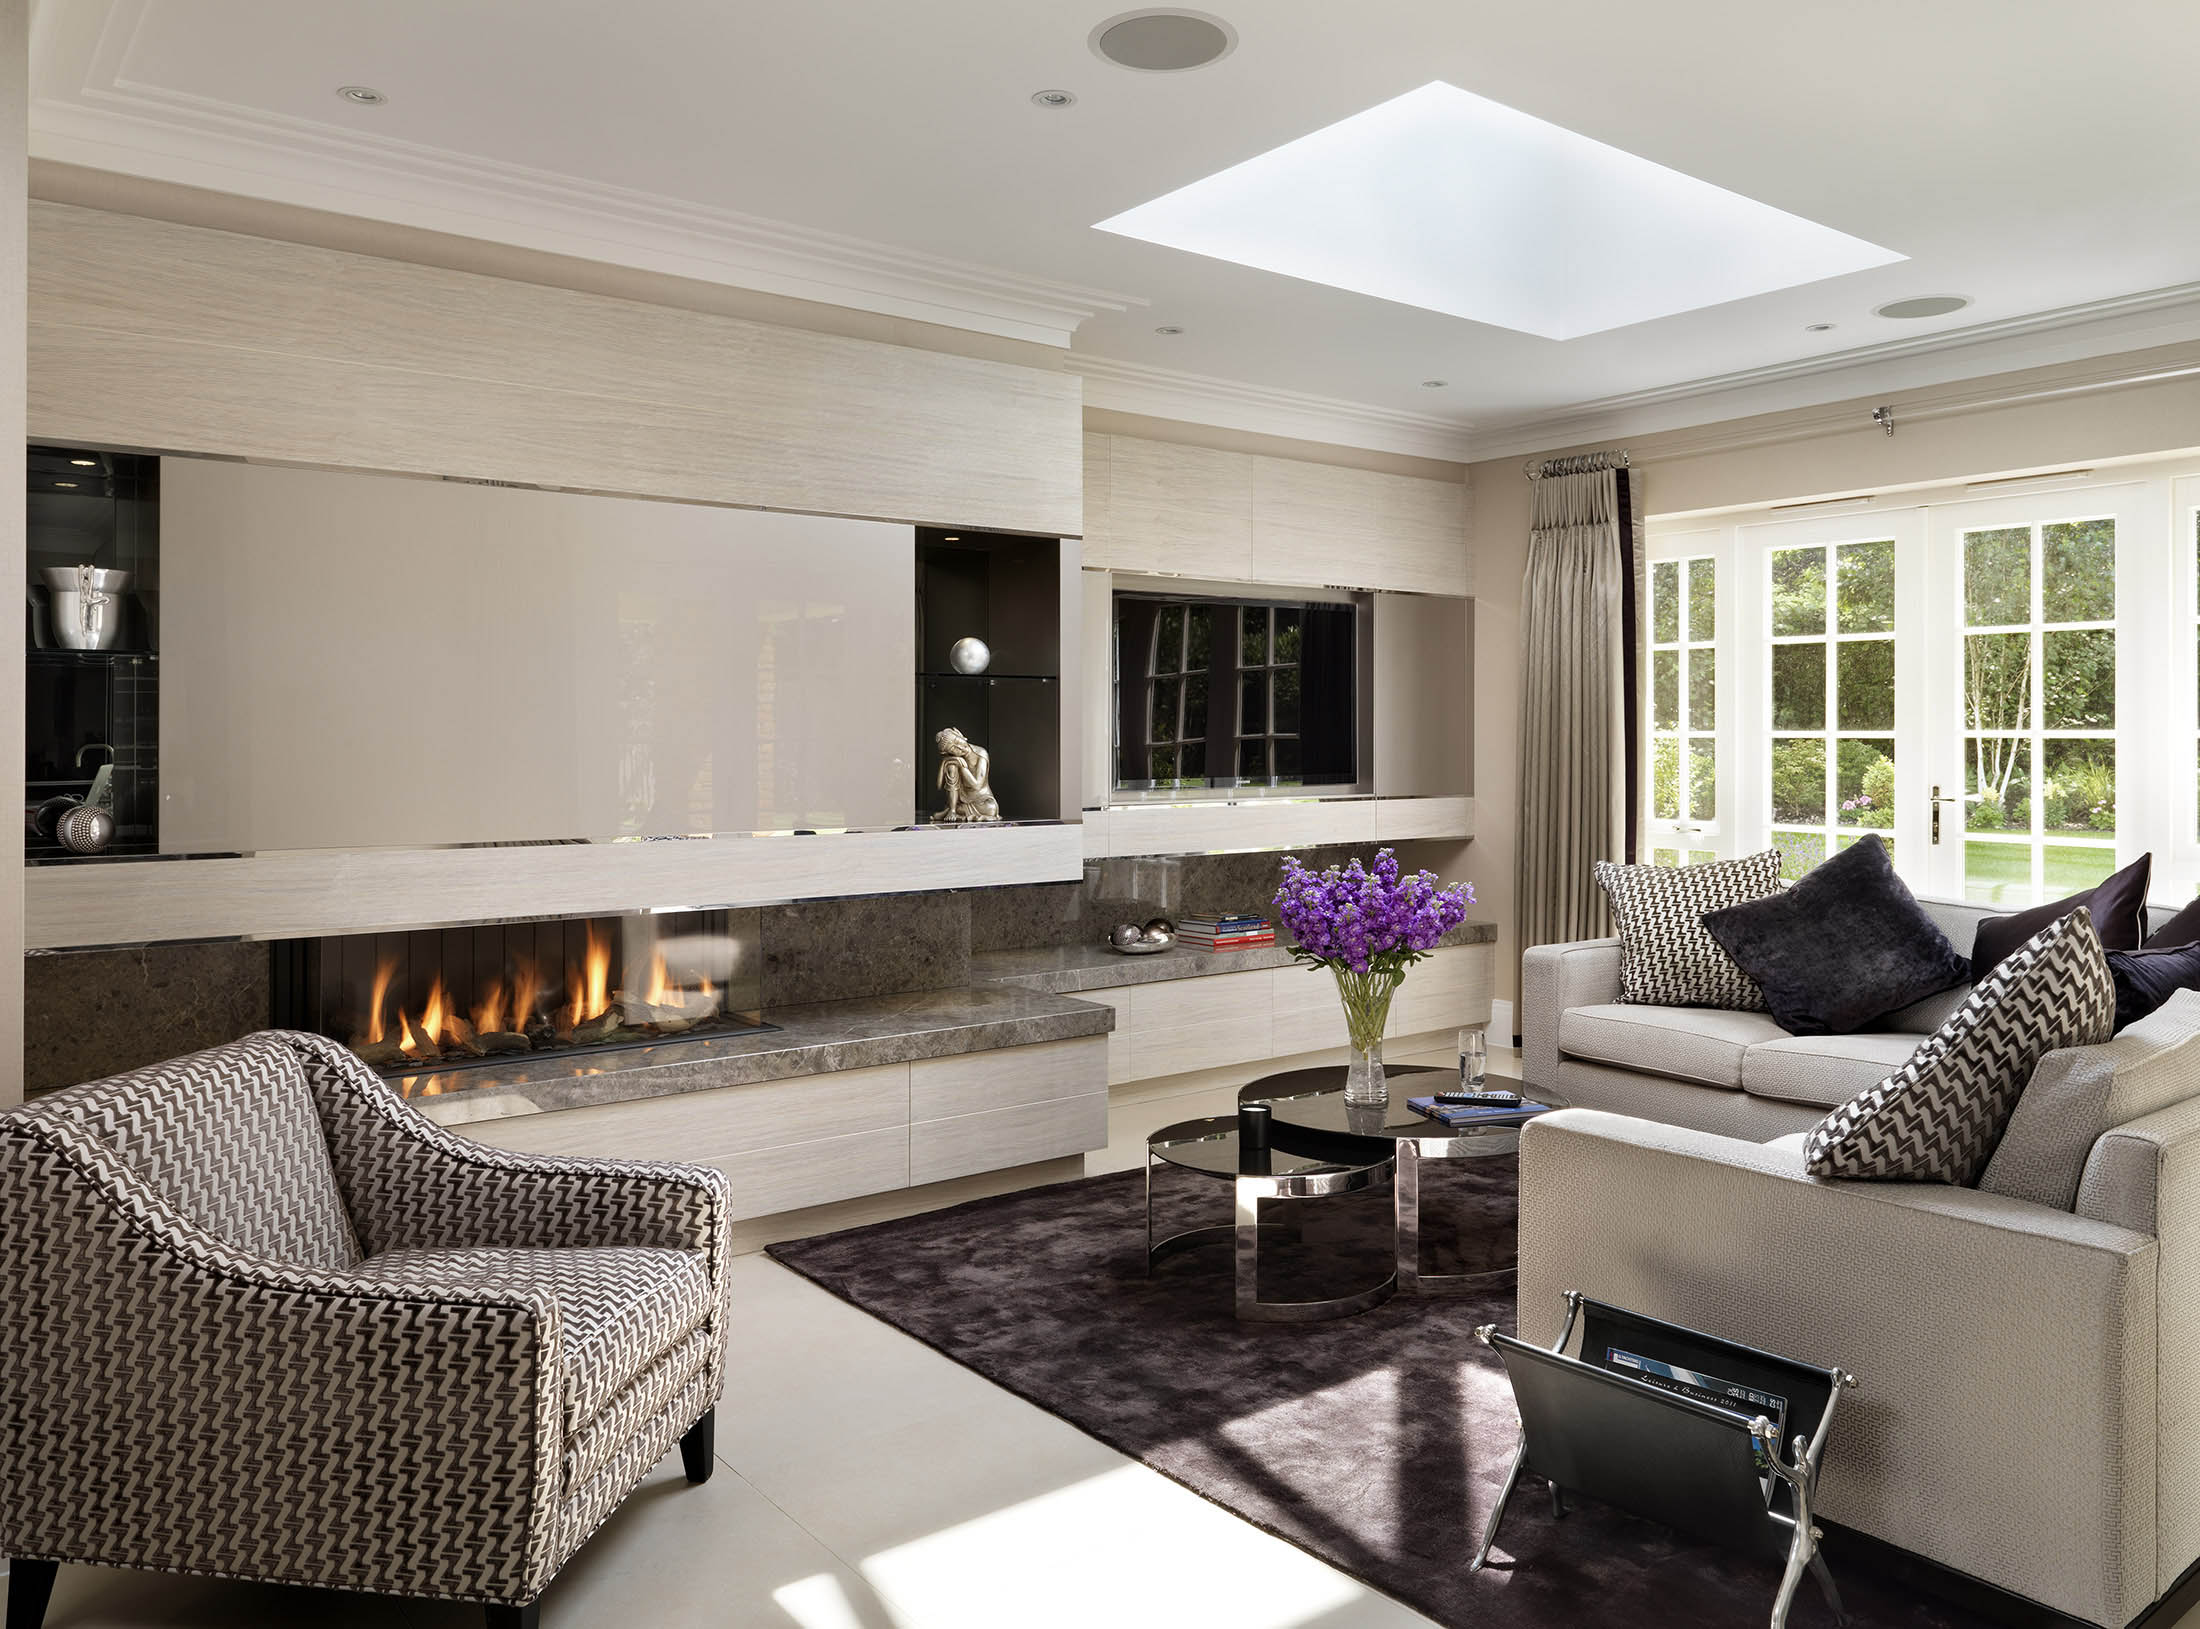 luxury interior designer living space design for new-build property